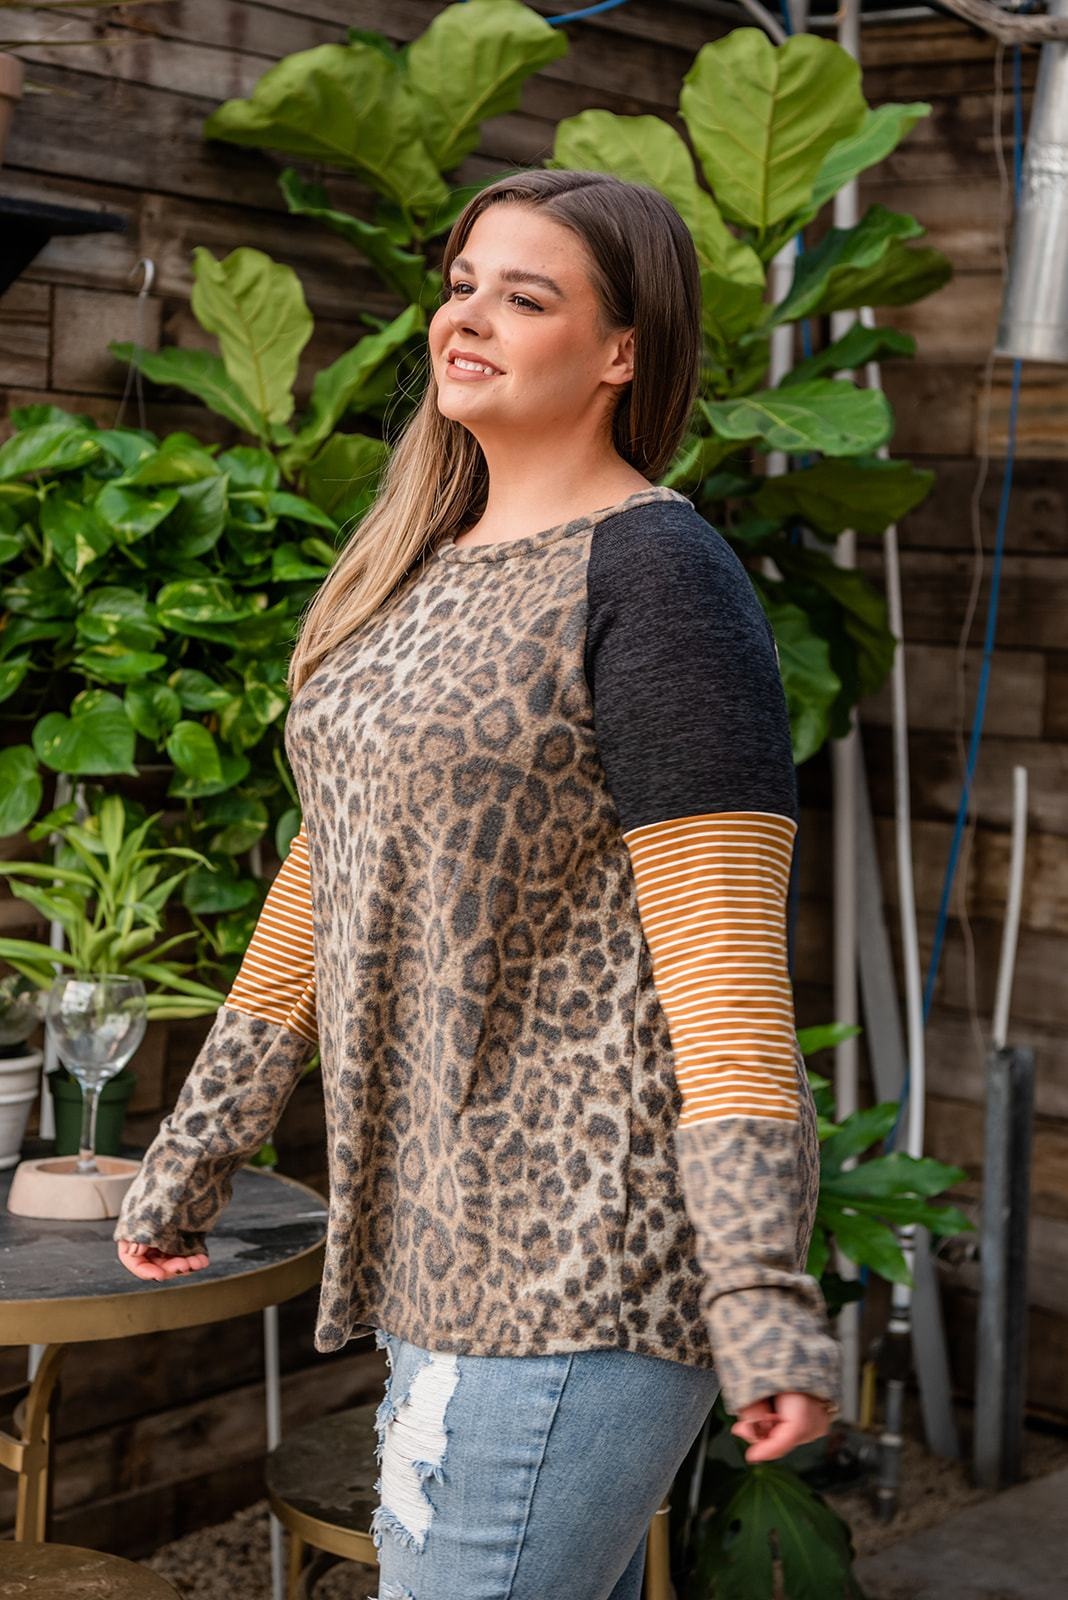 "This longsleeve leopard print top features a color block print on the sleeves with black, gold with stripes and leopard.  Fabric: 95% Polyester, 5% Spandex  Approx Measurements:  1X: Bust 46"", Length 29""  2X: Bust 48"", Length 39""  3X: Bust 50"", Length 25  Model Kendall: 5'5 size 16 wearing size 2X"